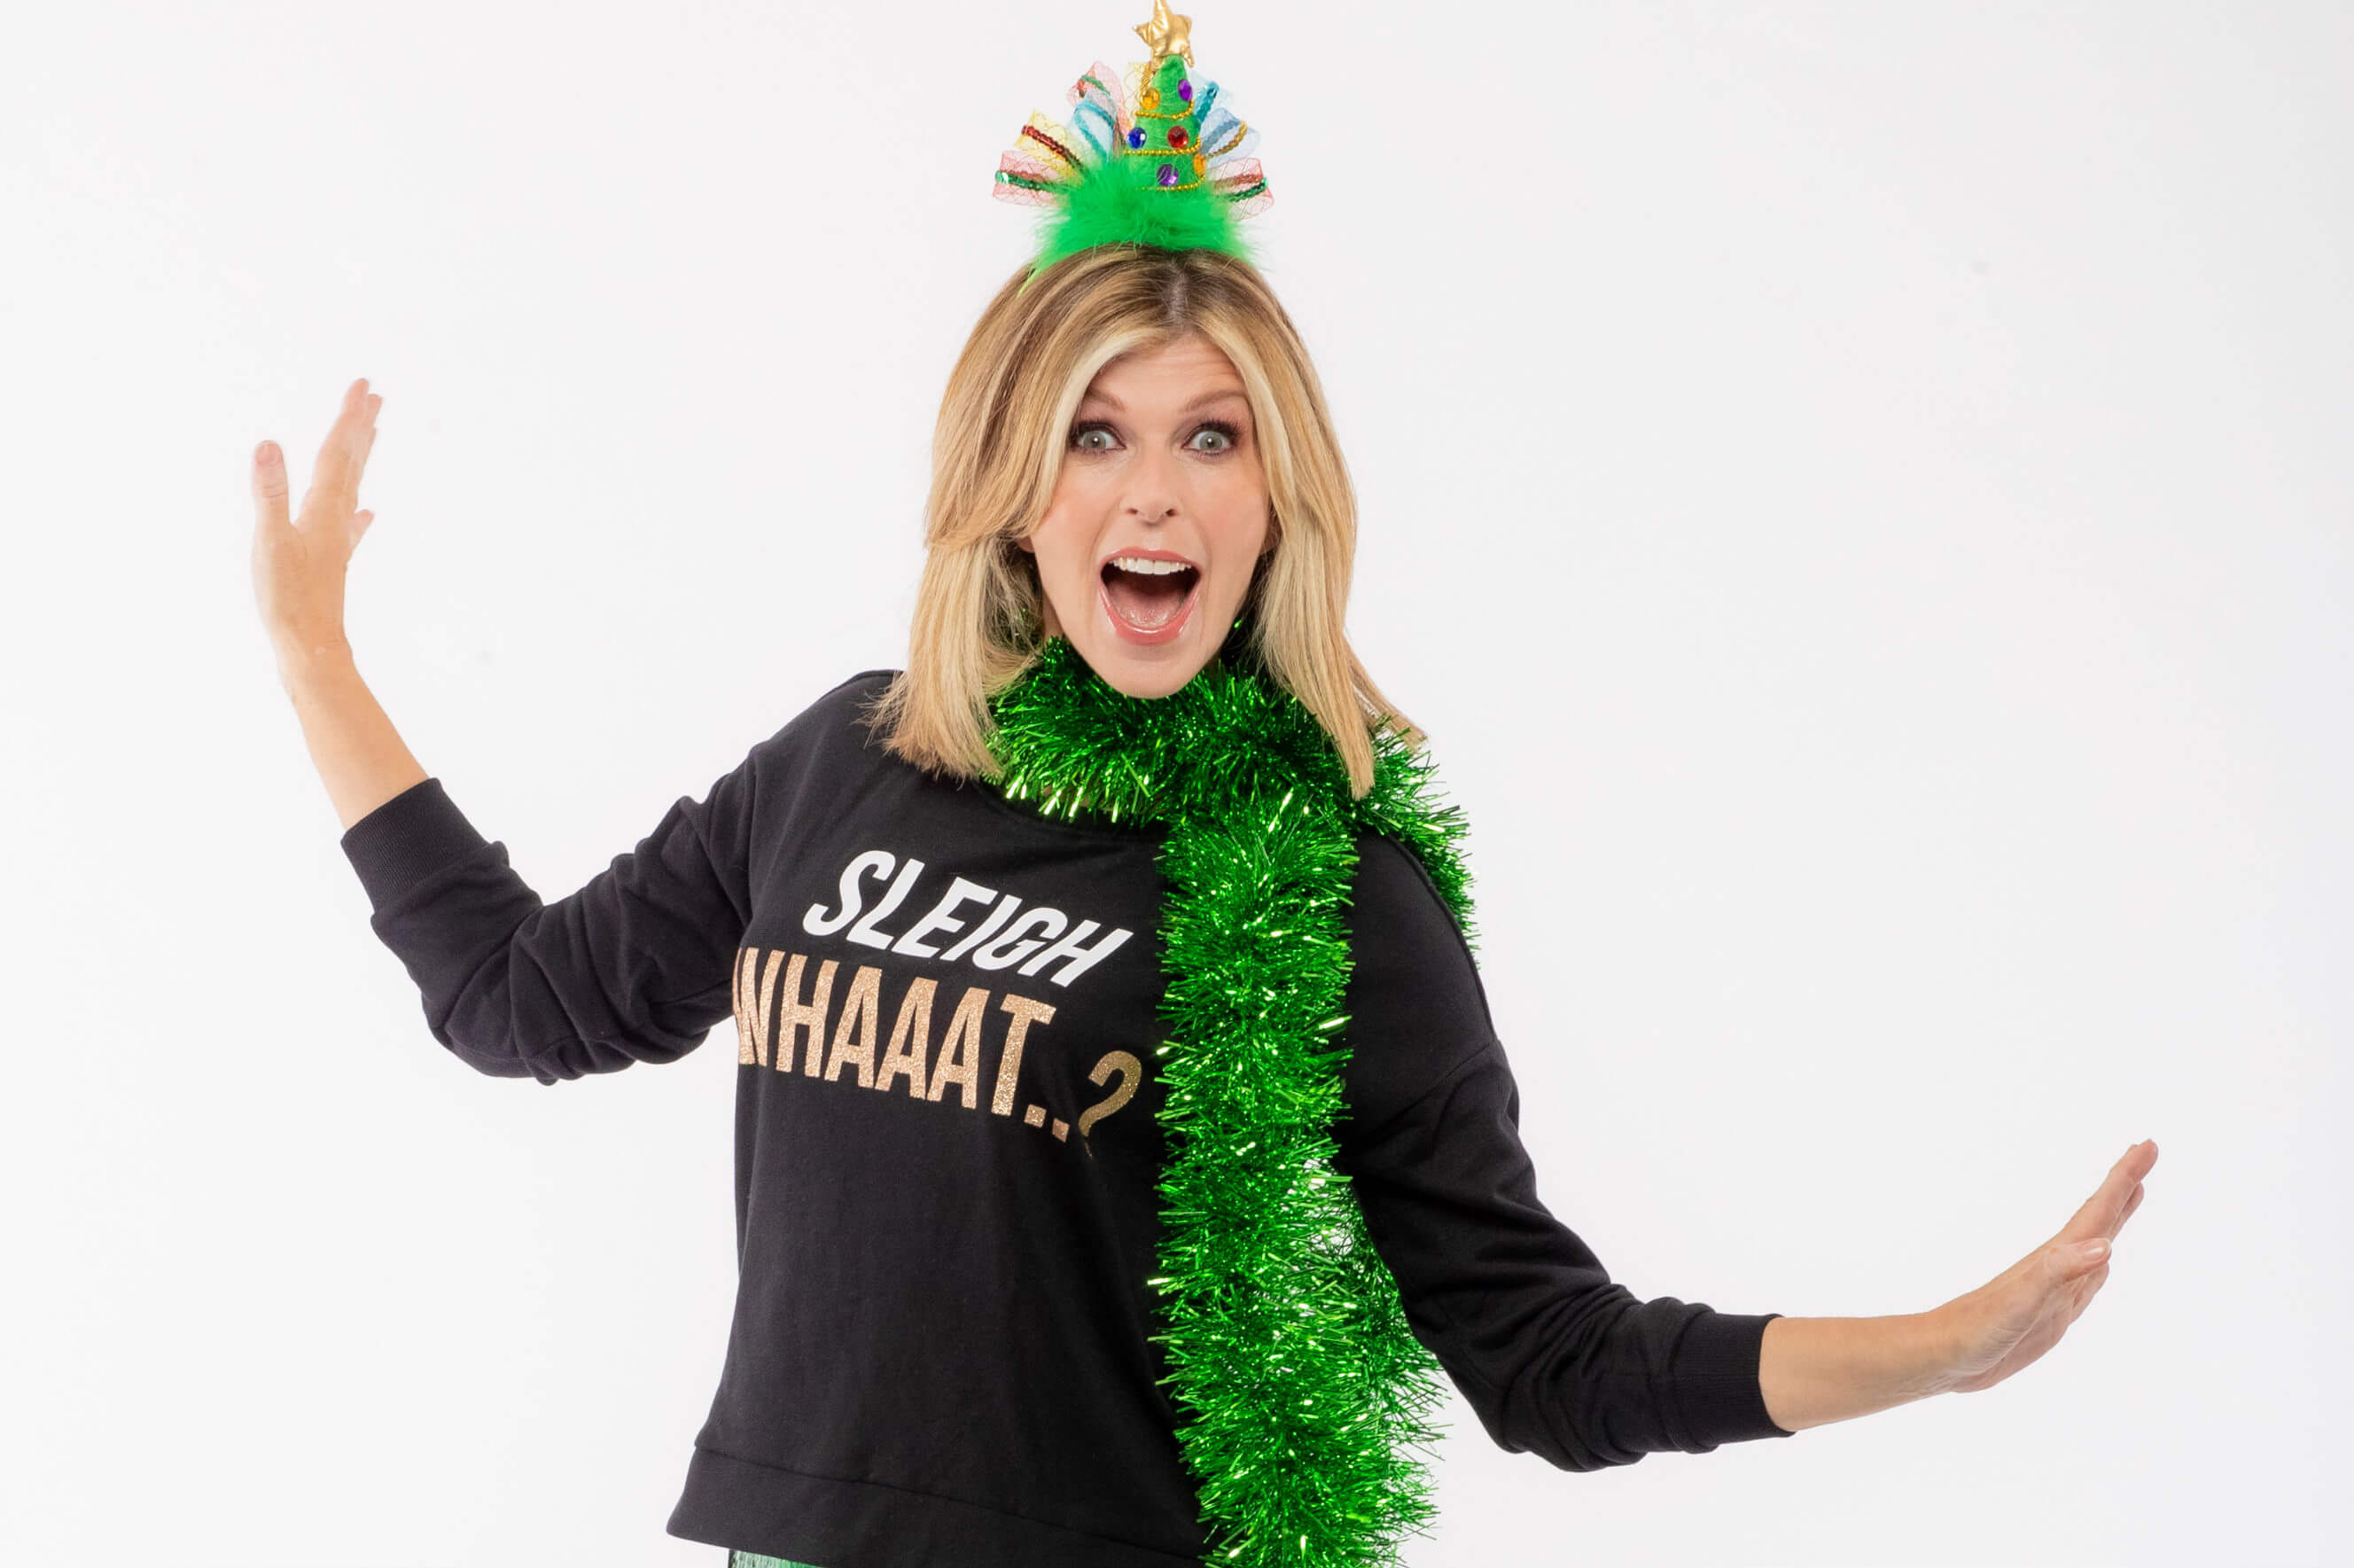 Kate Garraway puts on her Christmas Jumper for Save the Children's Christmas Jumper Day.